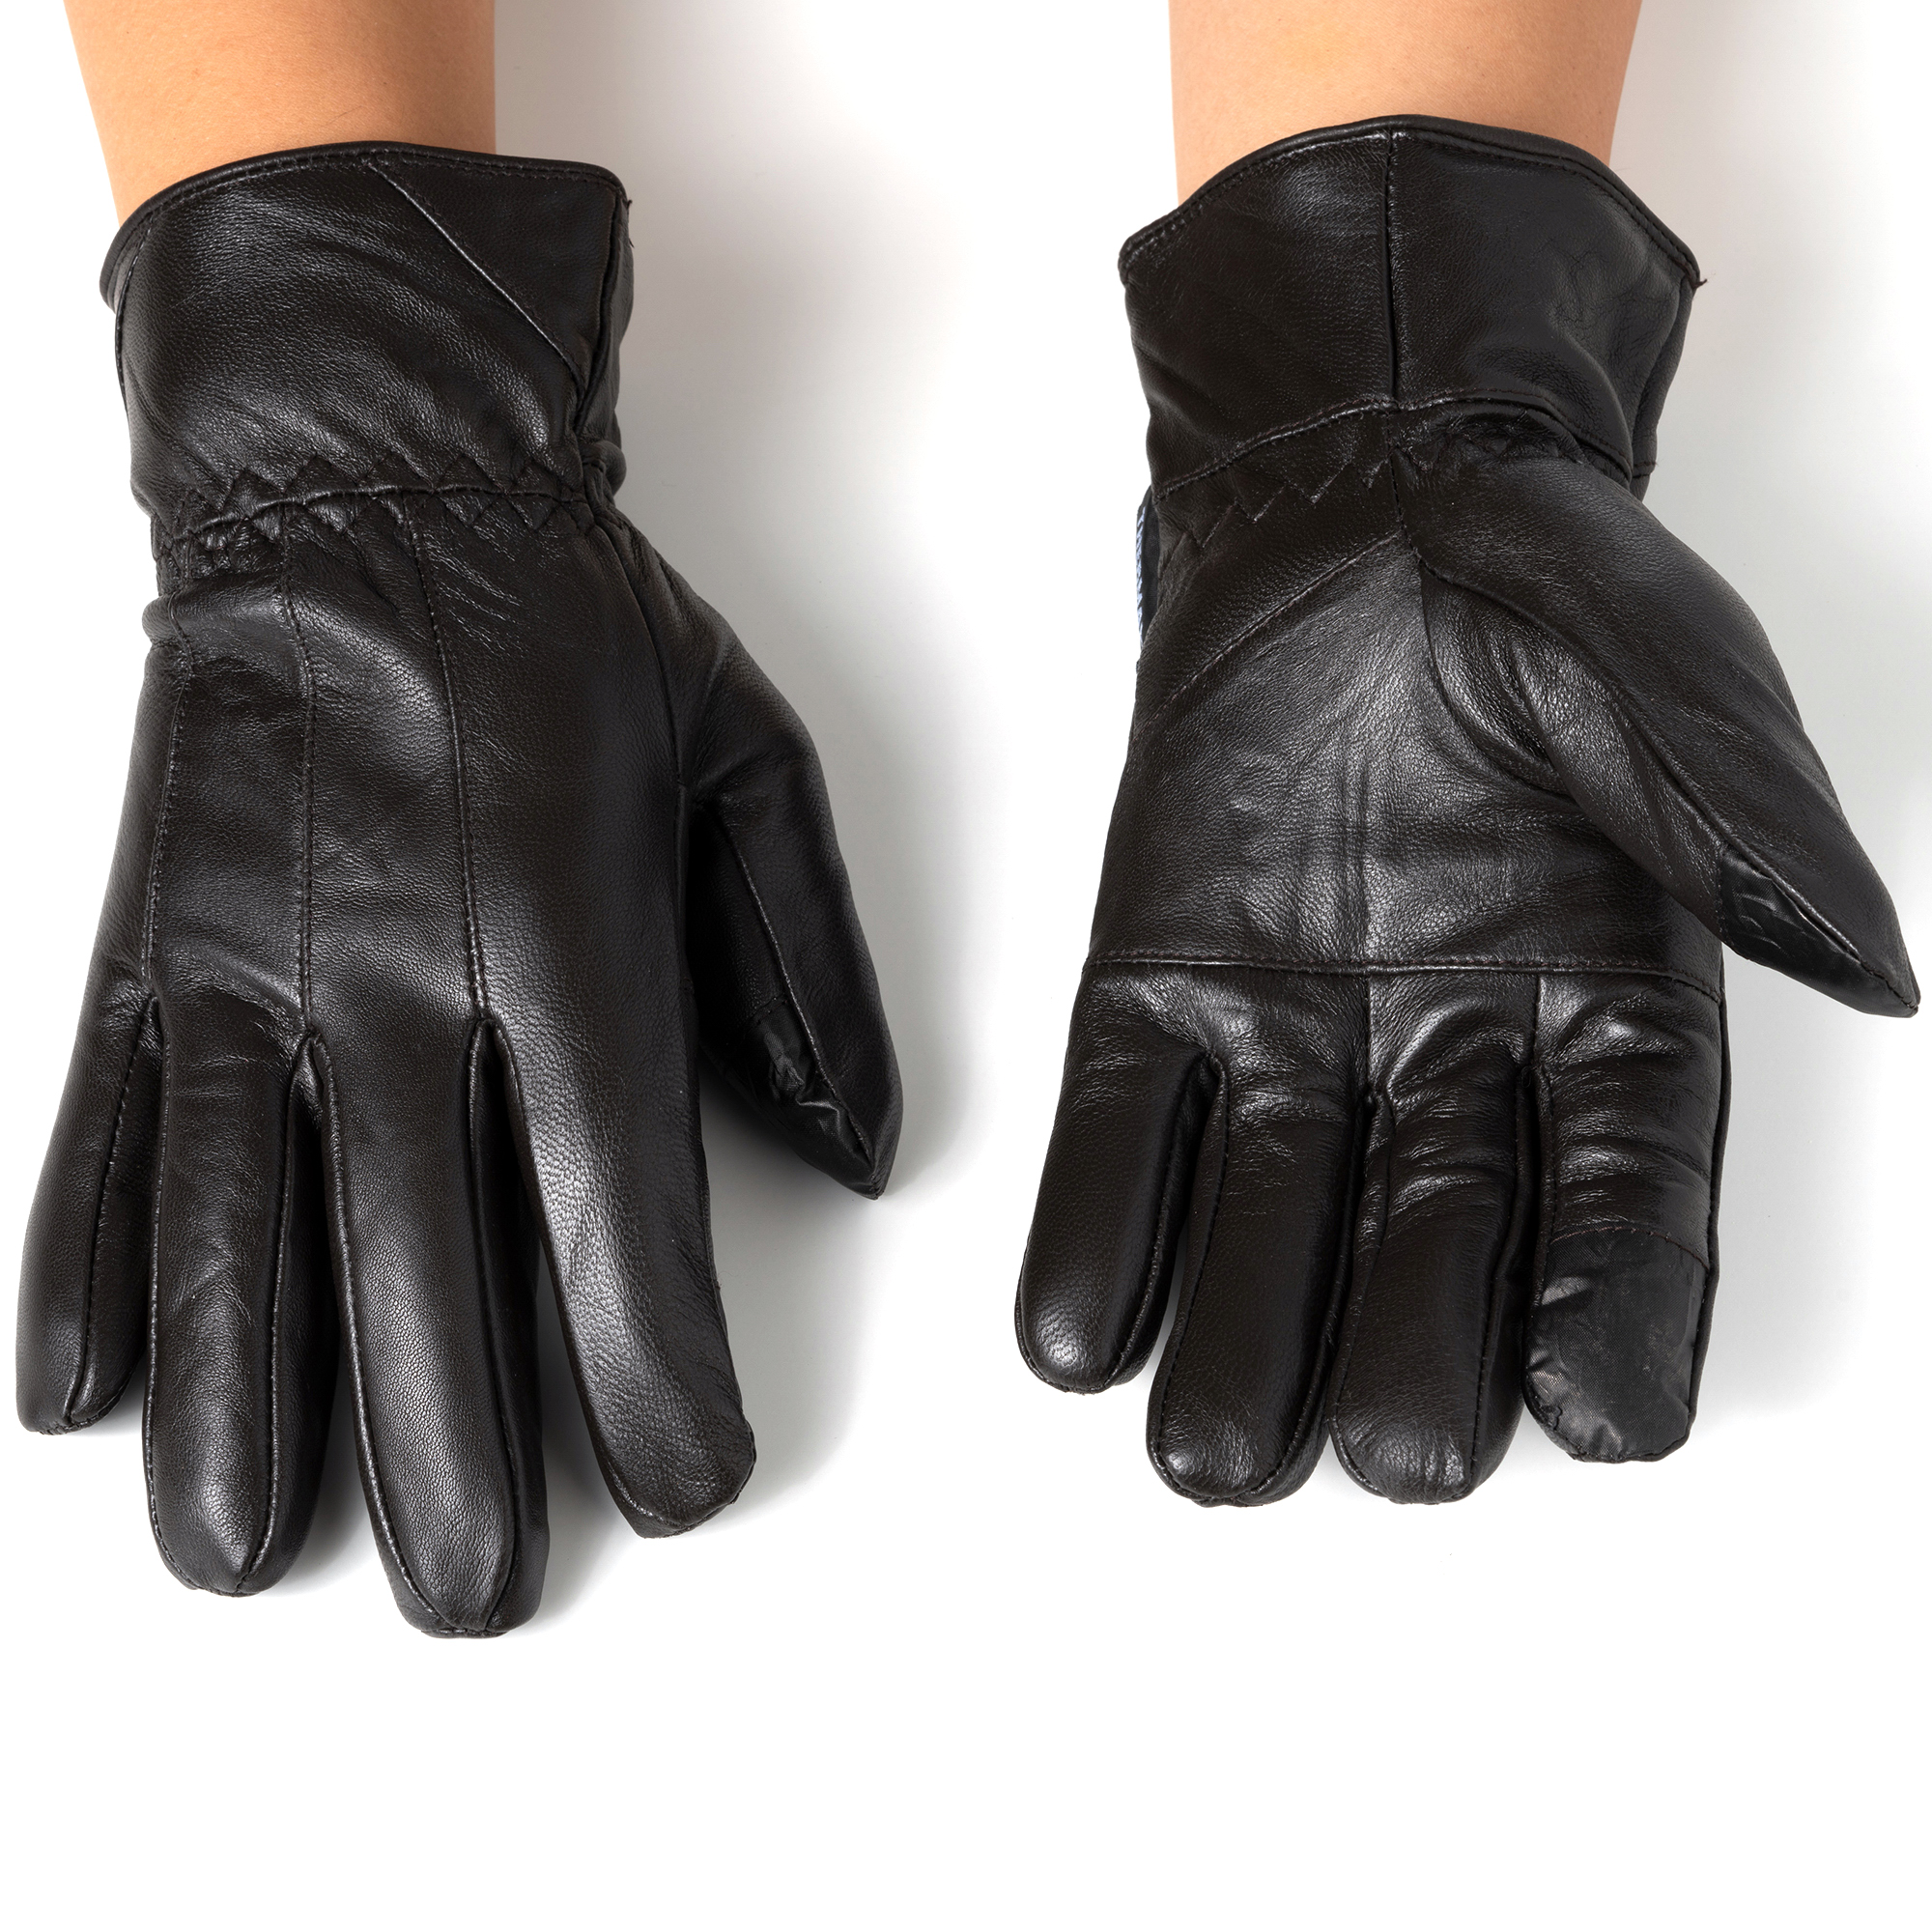 Alpine-Swiss-Mens-Touch-Screen-Gloves-Leather-Thermal-Lined-Phone-Texting-Gloves thumbnail 23